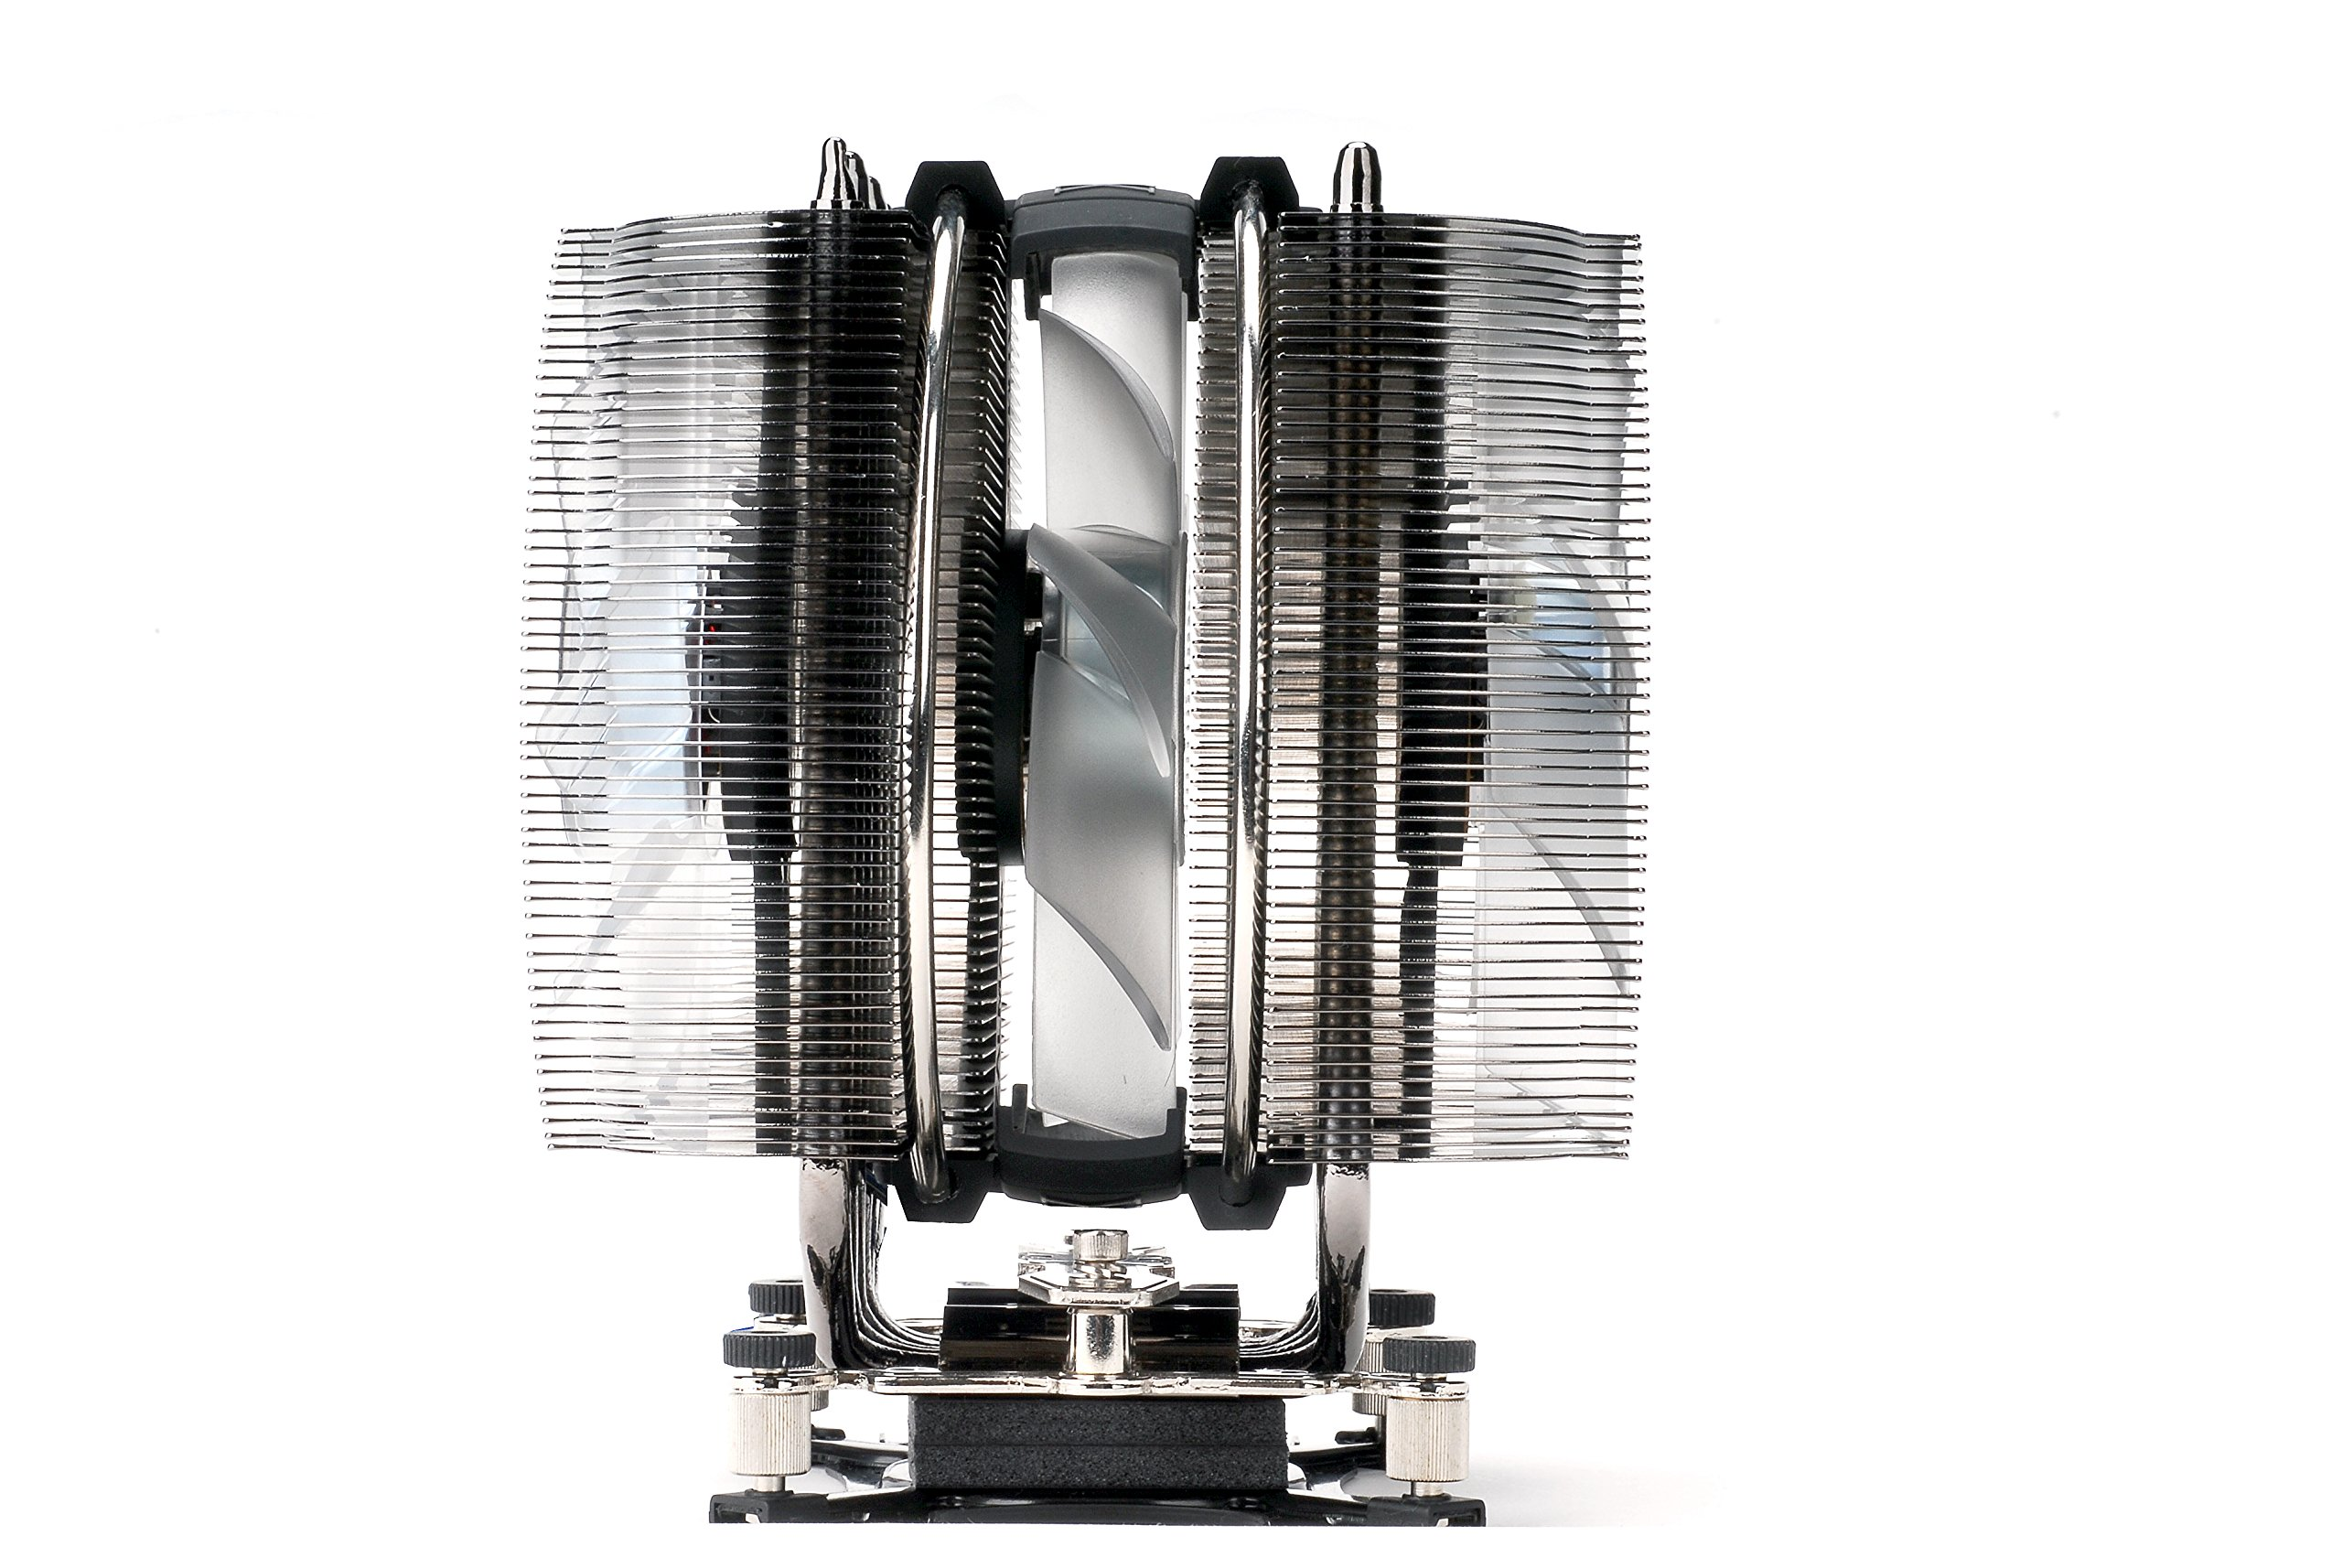 Zalman CPU Cooler for Intel Socket 2011/1155/1156/1366/775 and AMD Socket FM1/AM3+/AM3/AM2+/AM2 CNPS12X